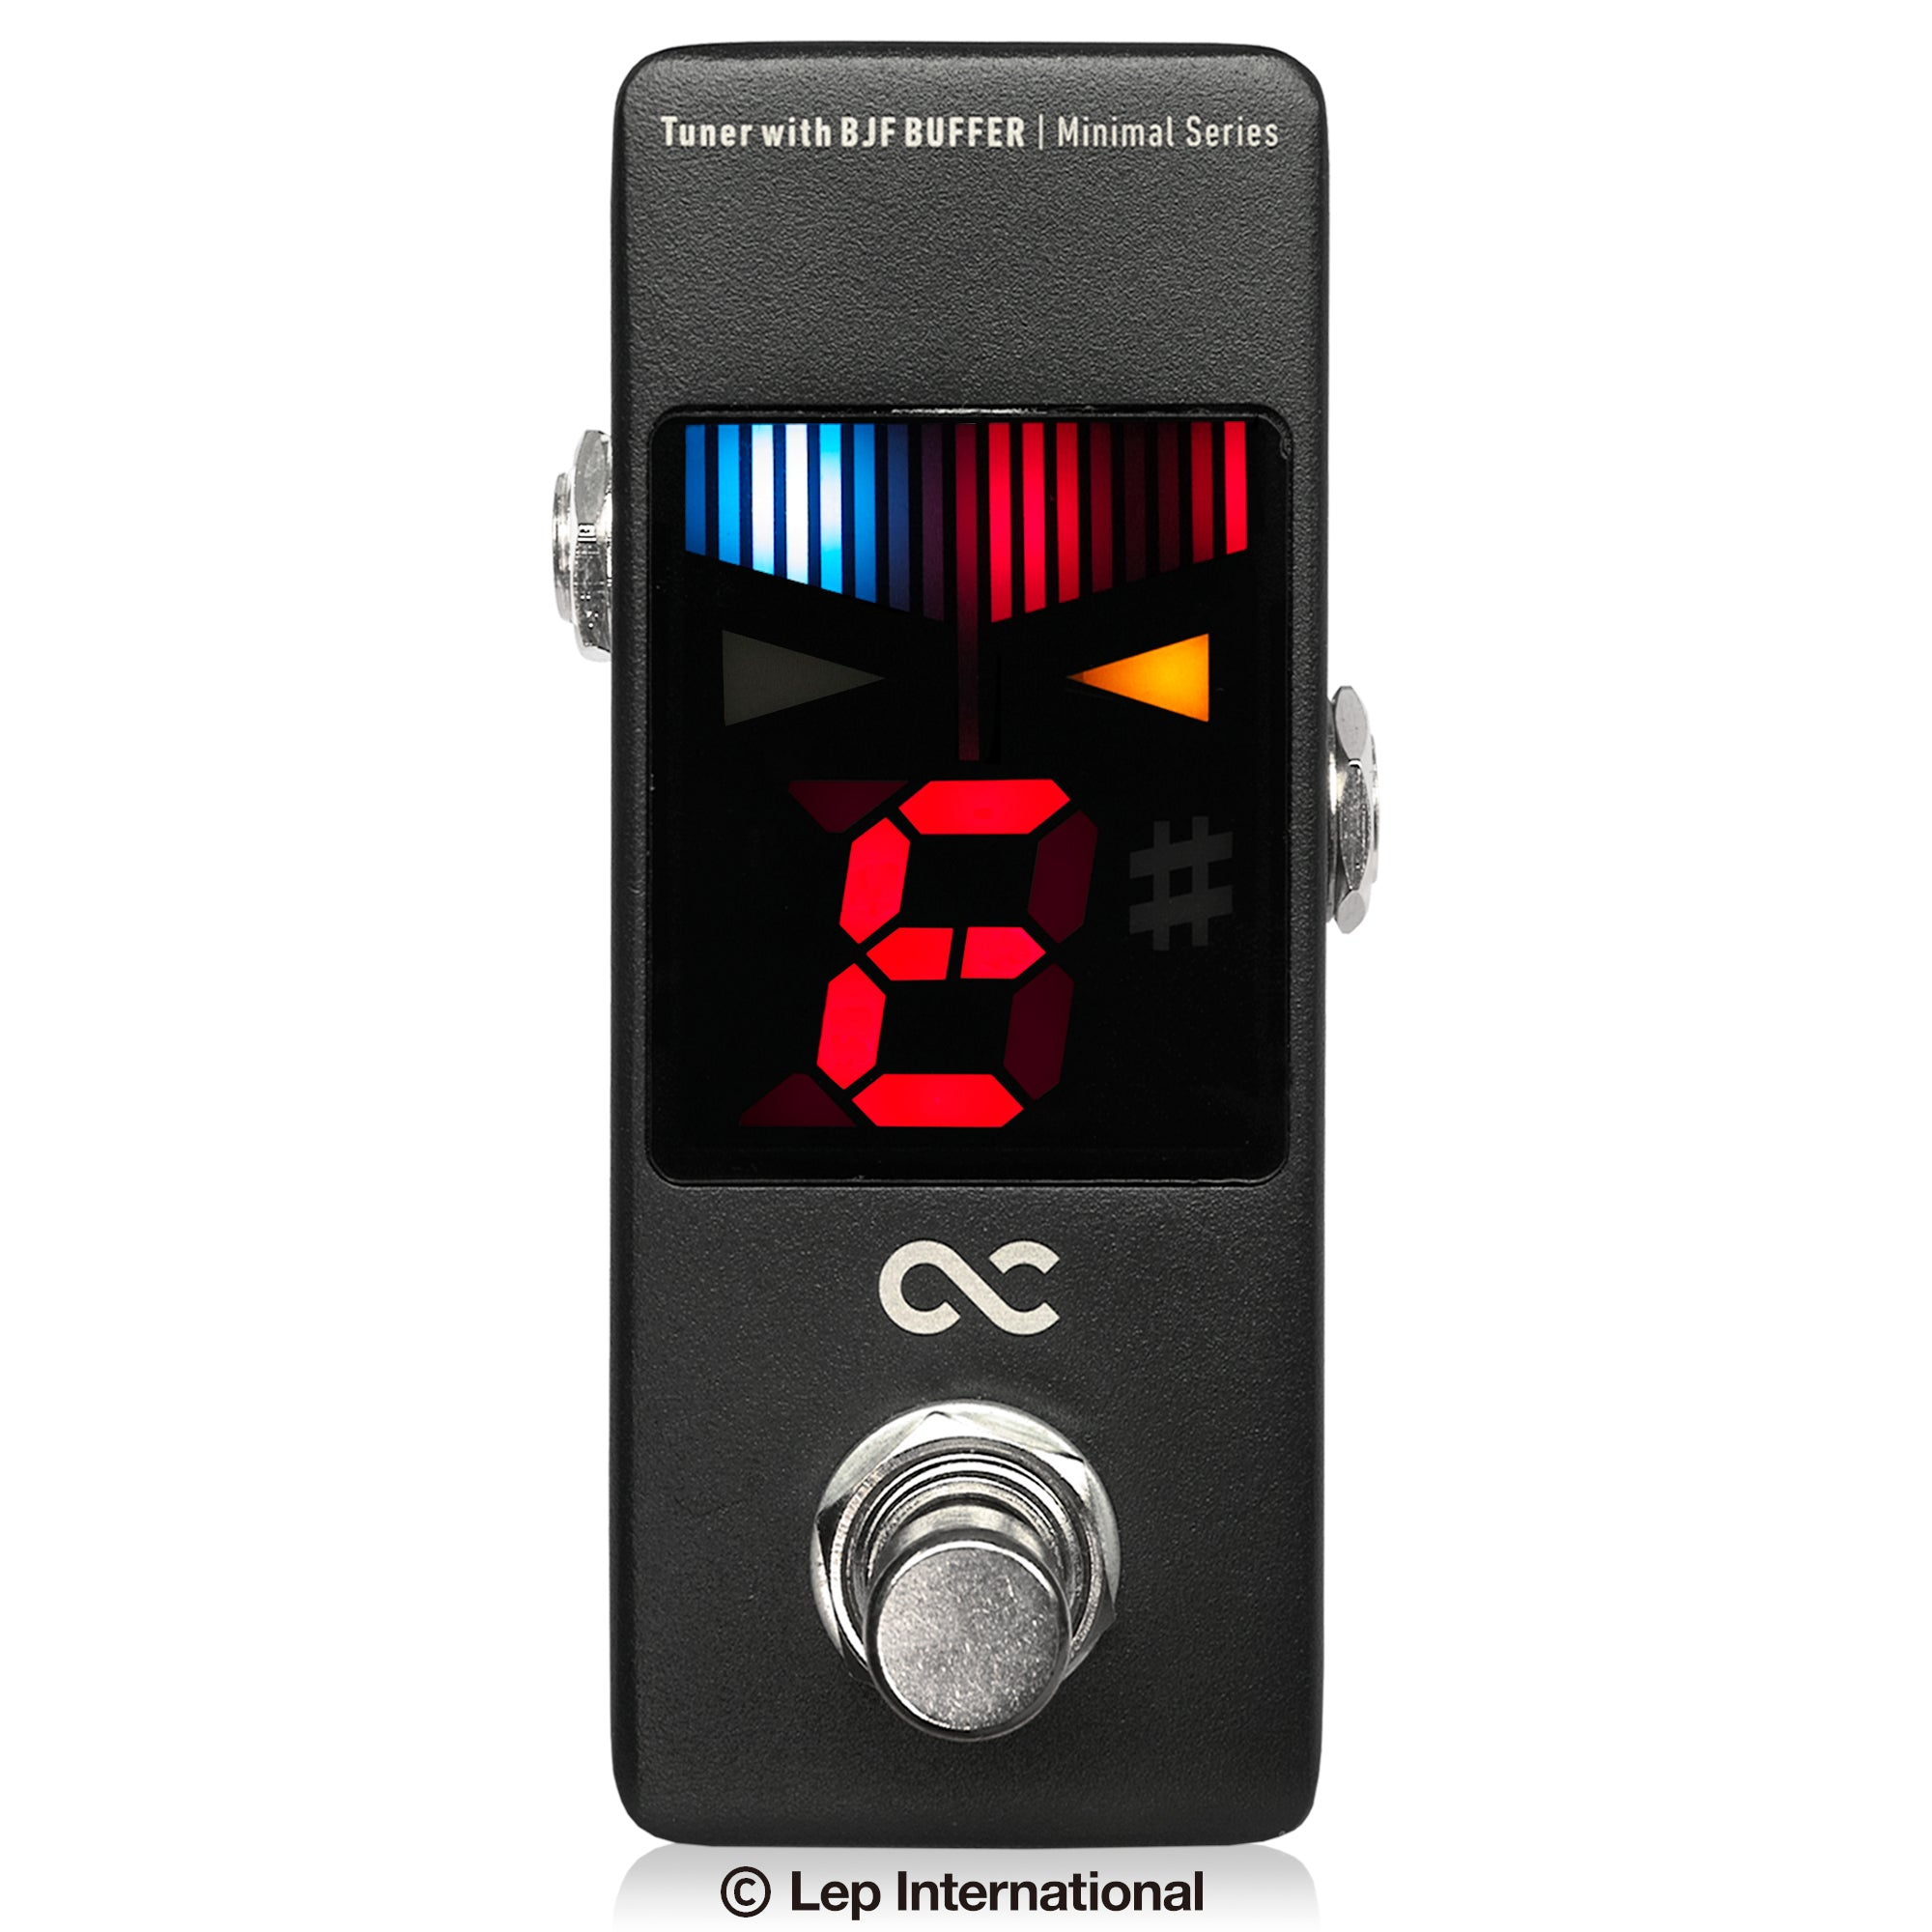 One Control Minimal Series Tuner with BJF Buffer